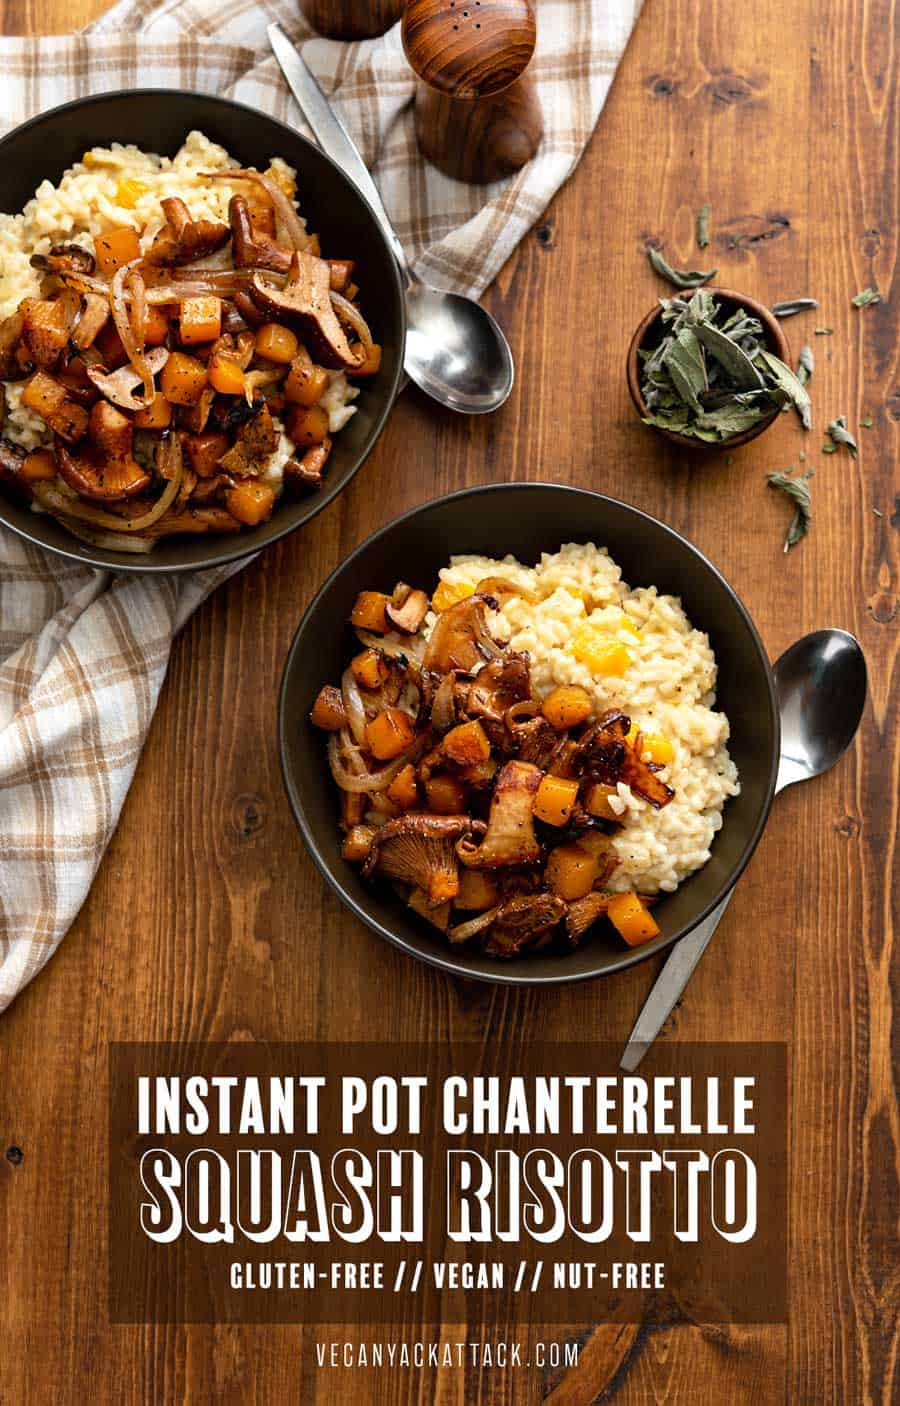 Comforting, satiating, and filled with Fall flavors, this Instant Pot Chanterelle Squash Risotto really hits the spot! With using a multi-cooker for this recipe, you bypass the high-maintenance process of making risotto. #vegan #nutfree #glutenfree #soyfreeoption #veganrecipes